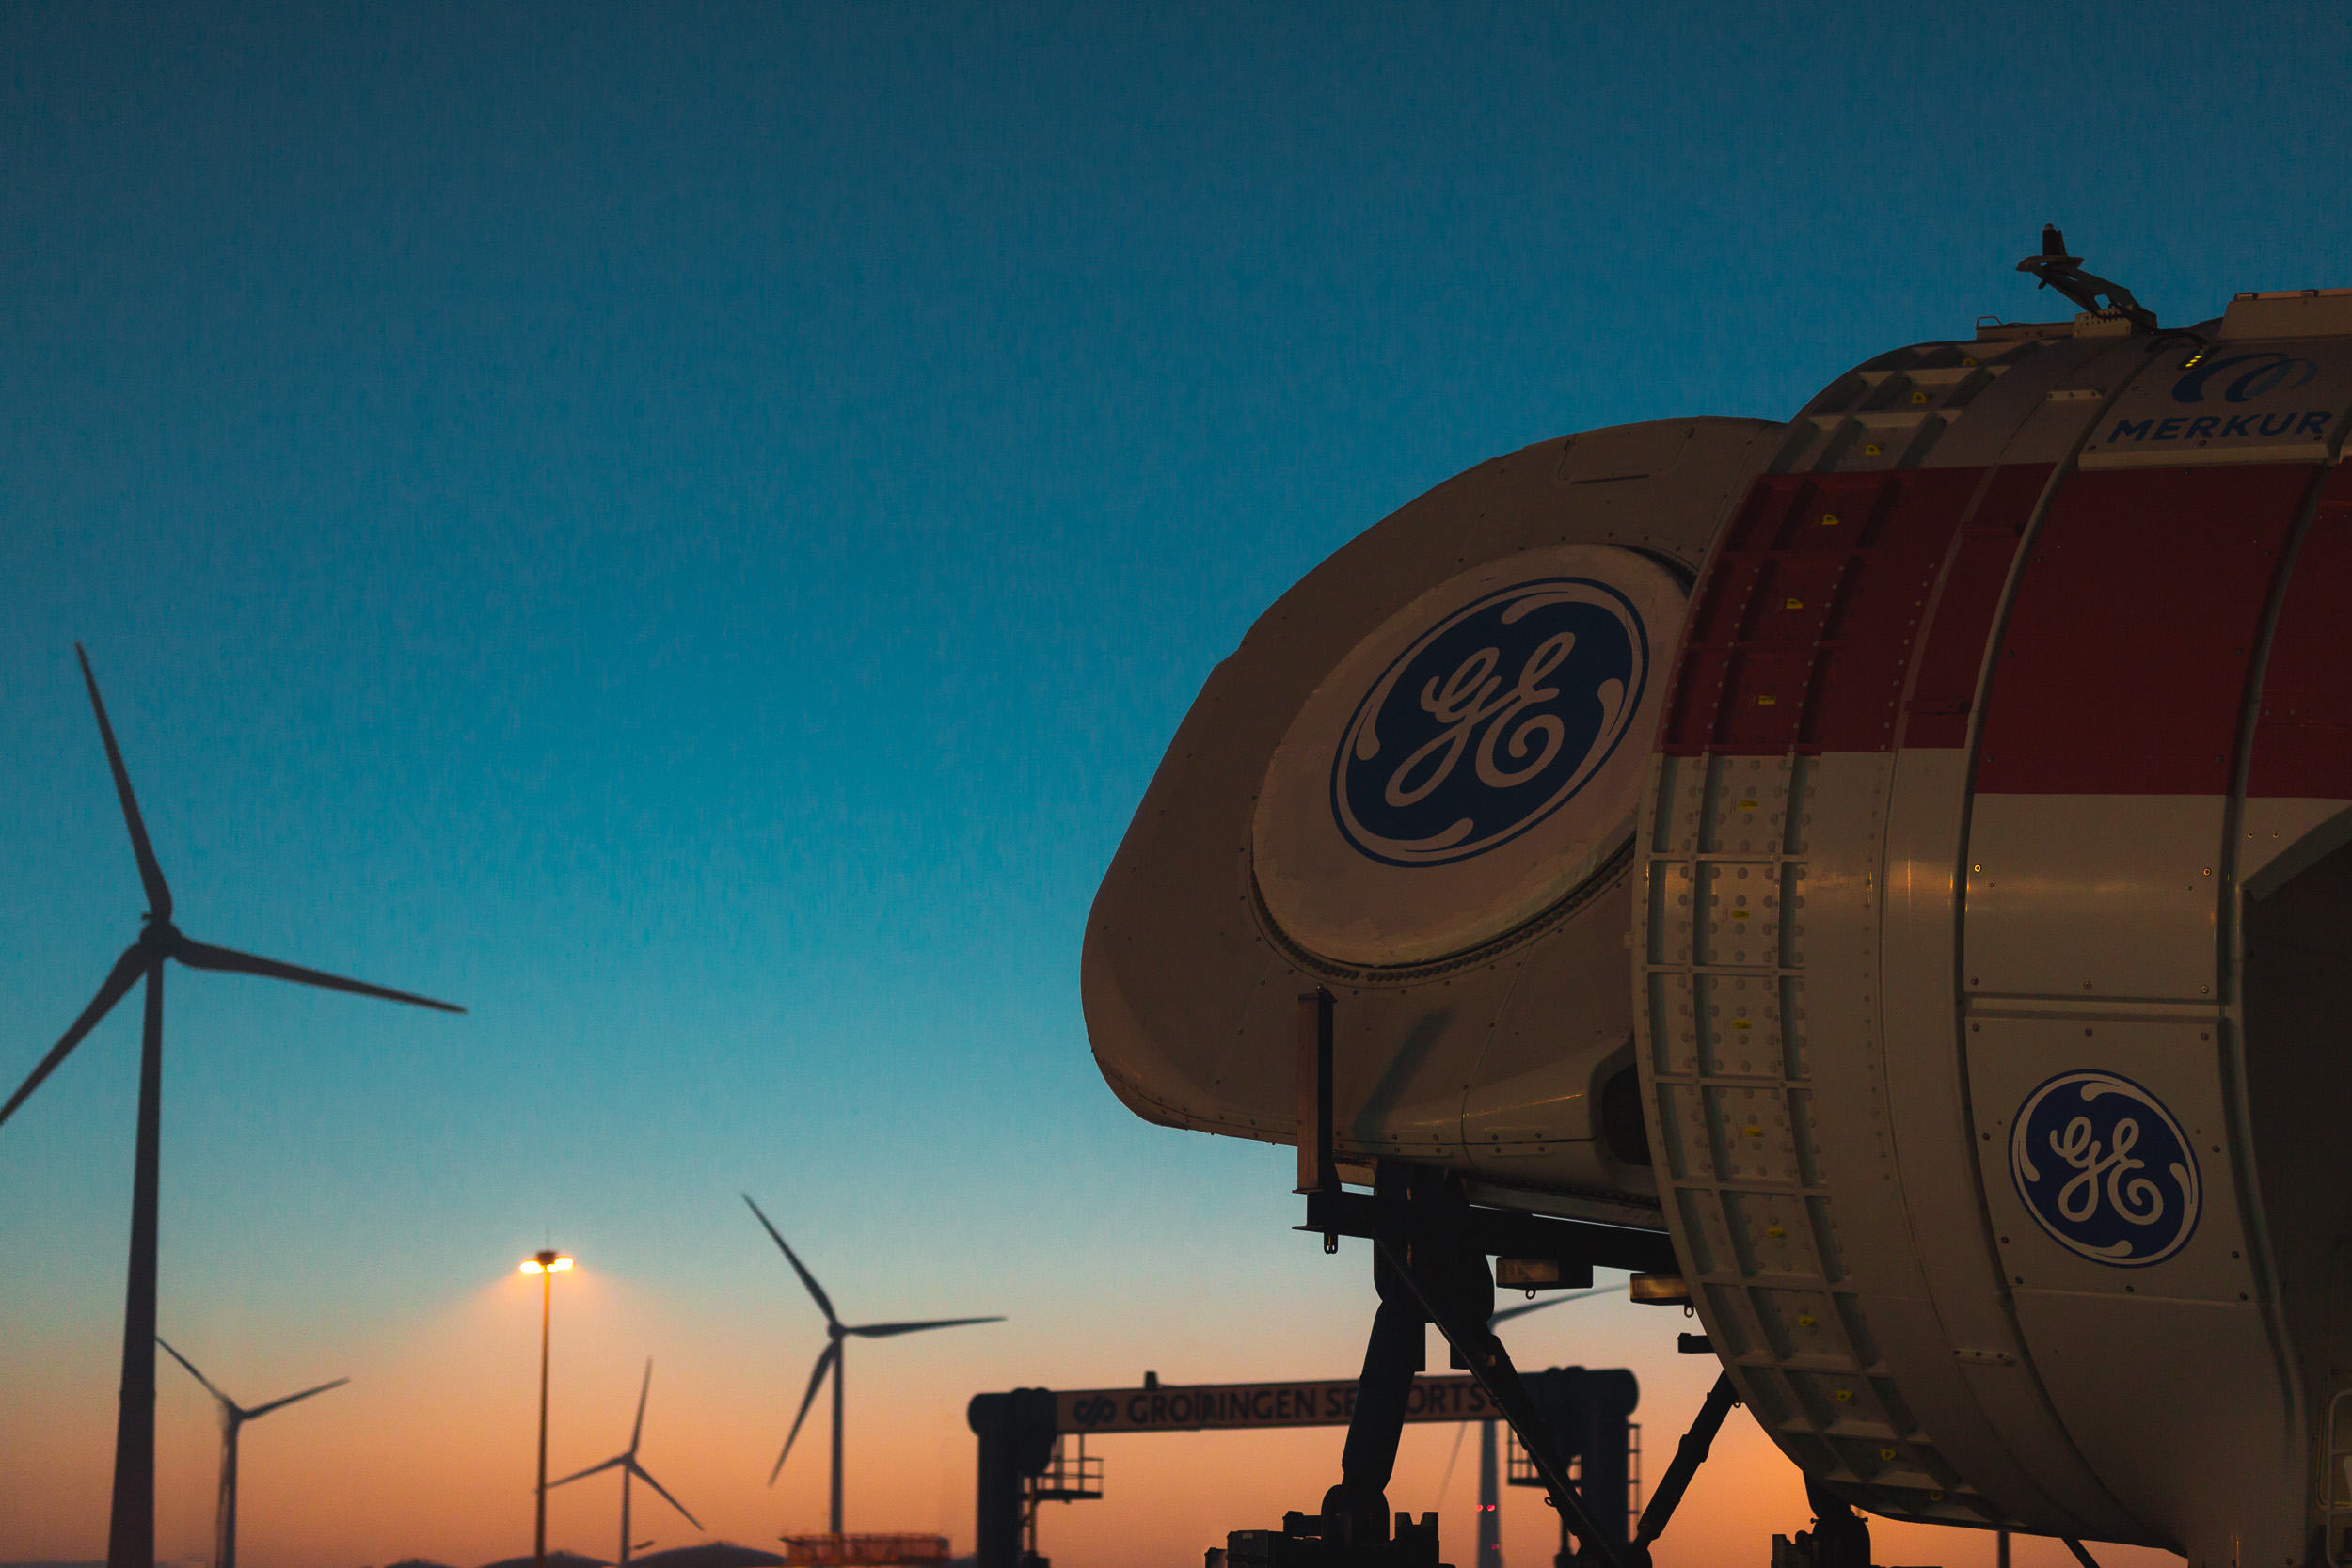 GENERAL ELECTRIC MERKUR OFFSHORE WIND